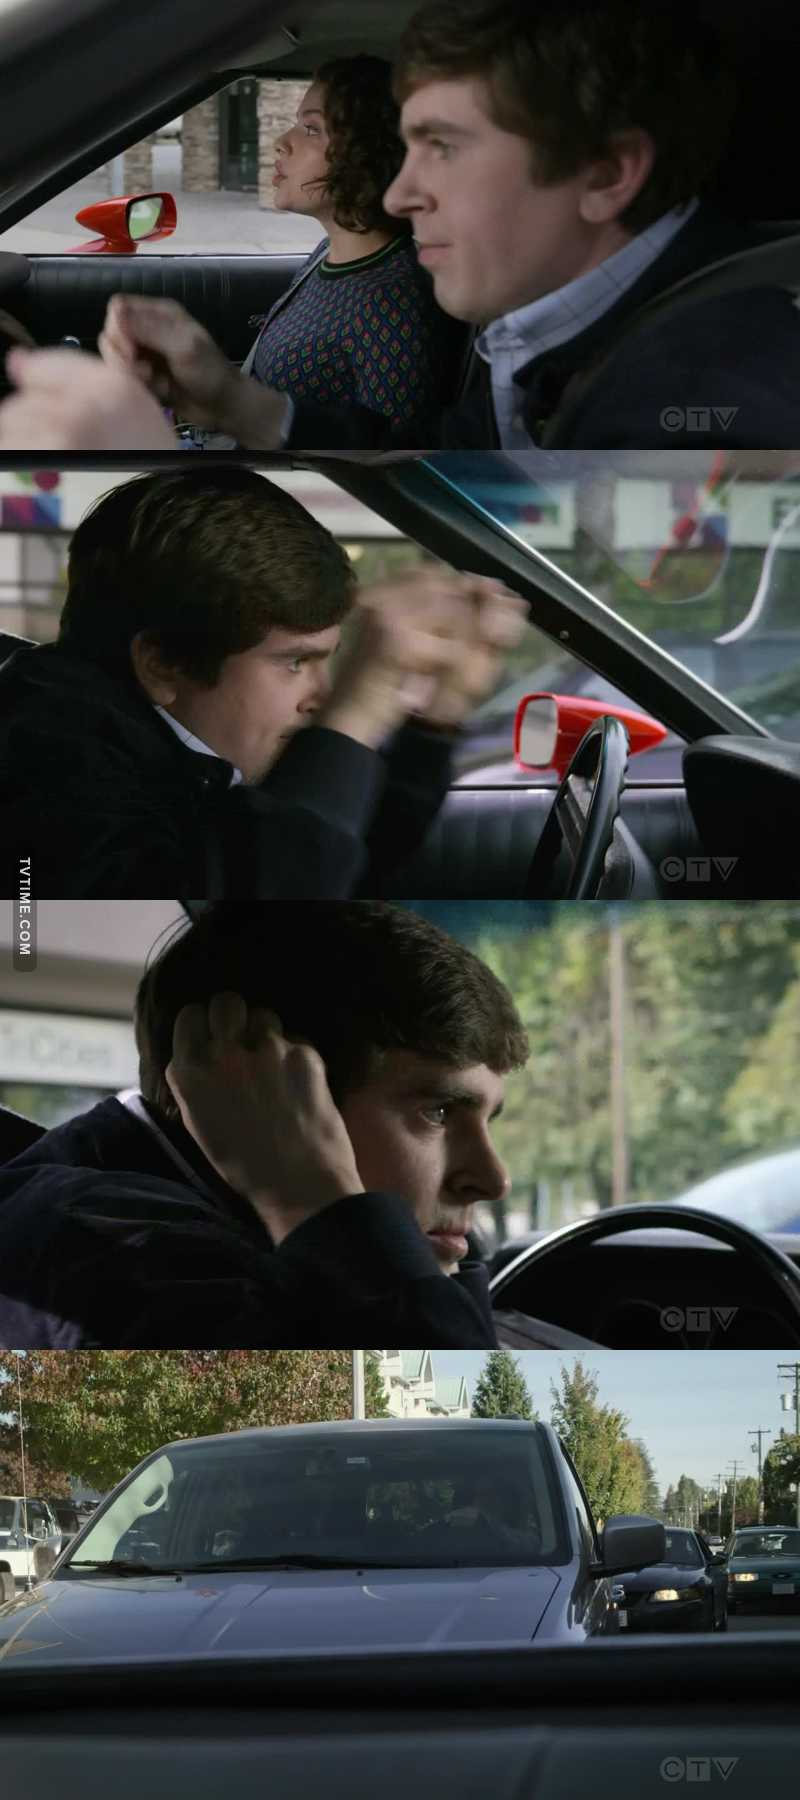 his acting is so fucking good and amazing wow i hope freddie highmore gets an emmy someday